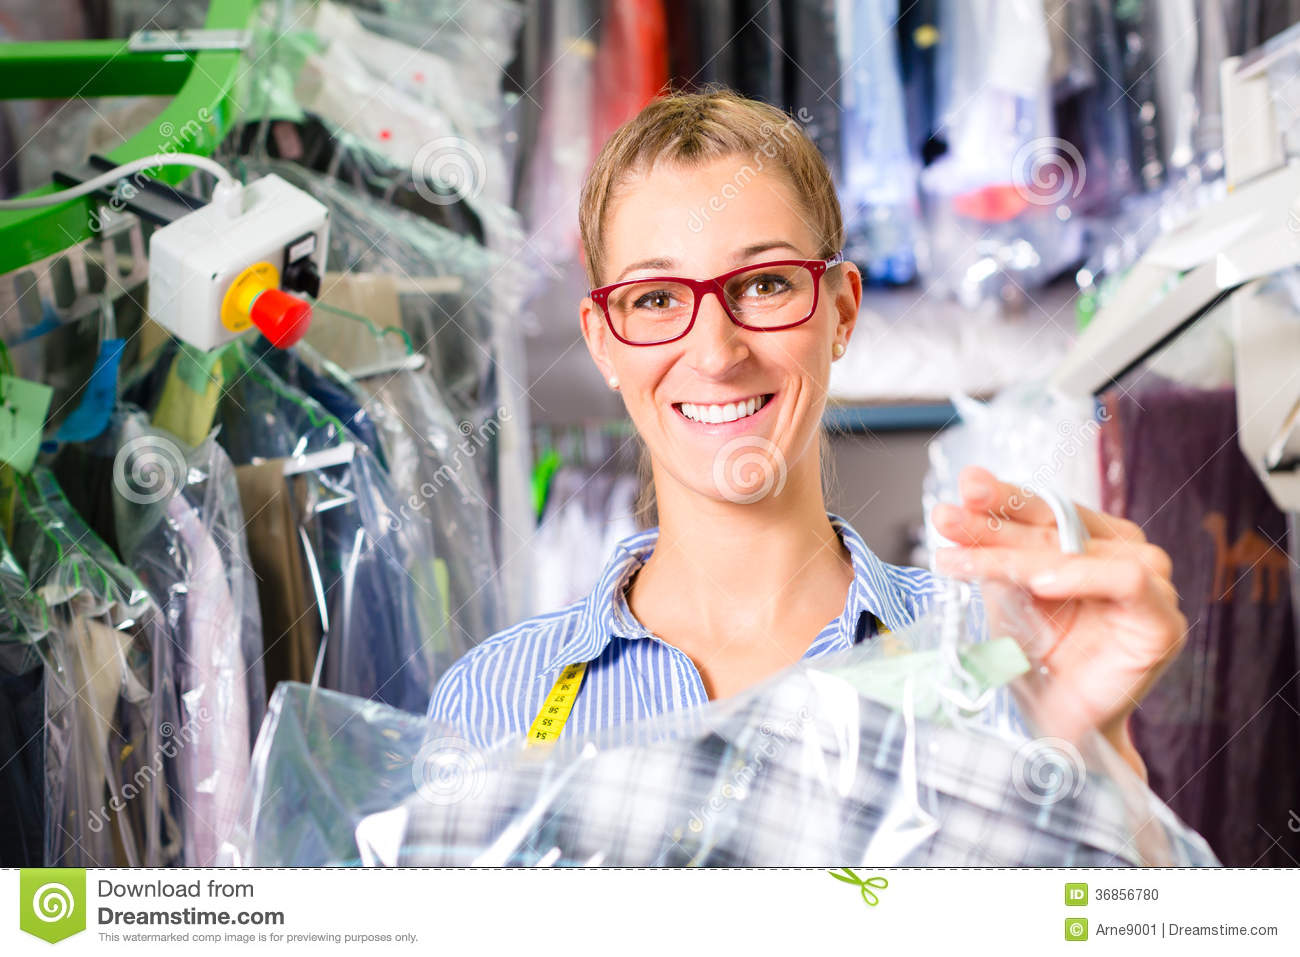 Cleaner in laundry shop checking clean clothes